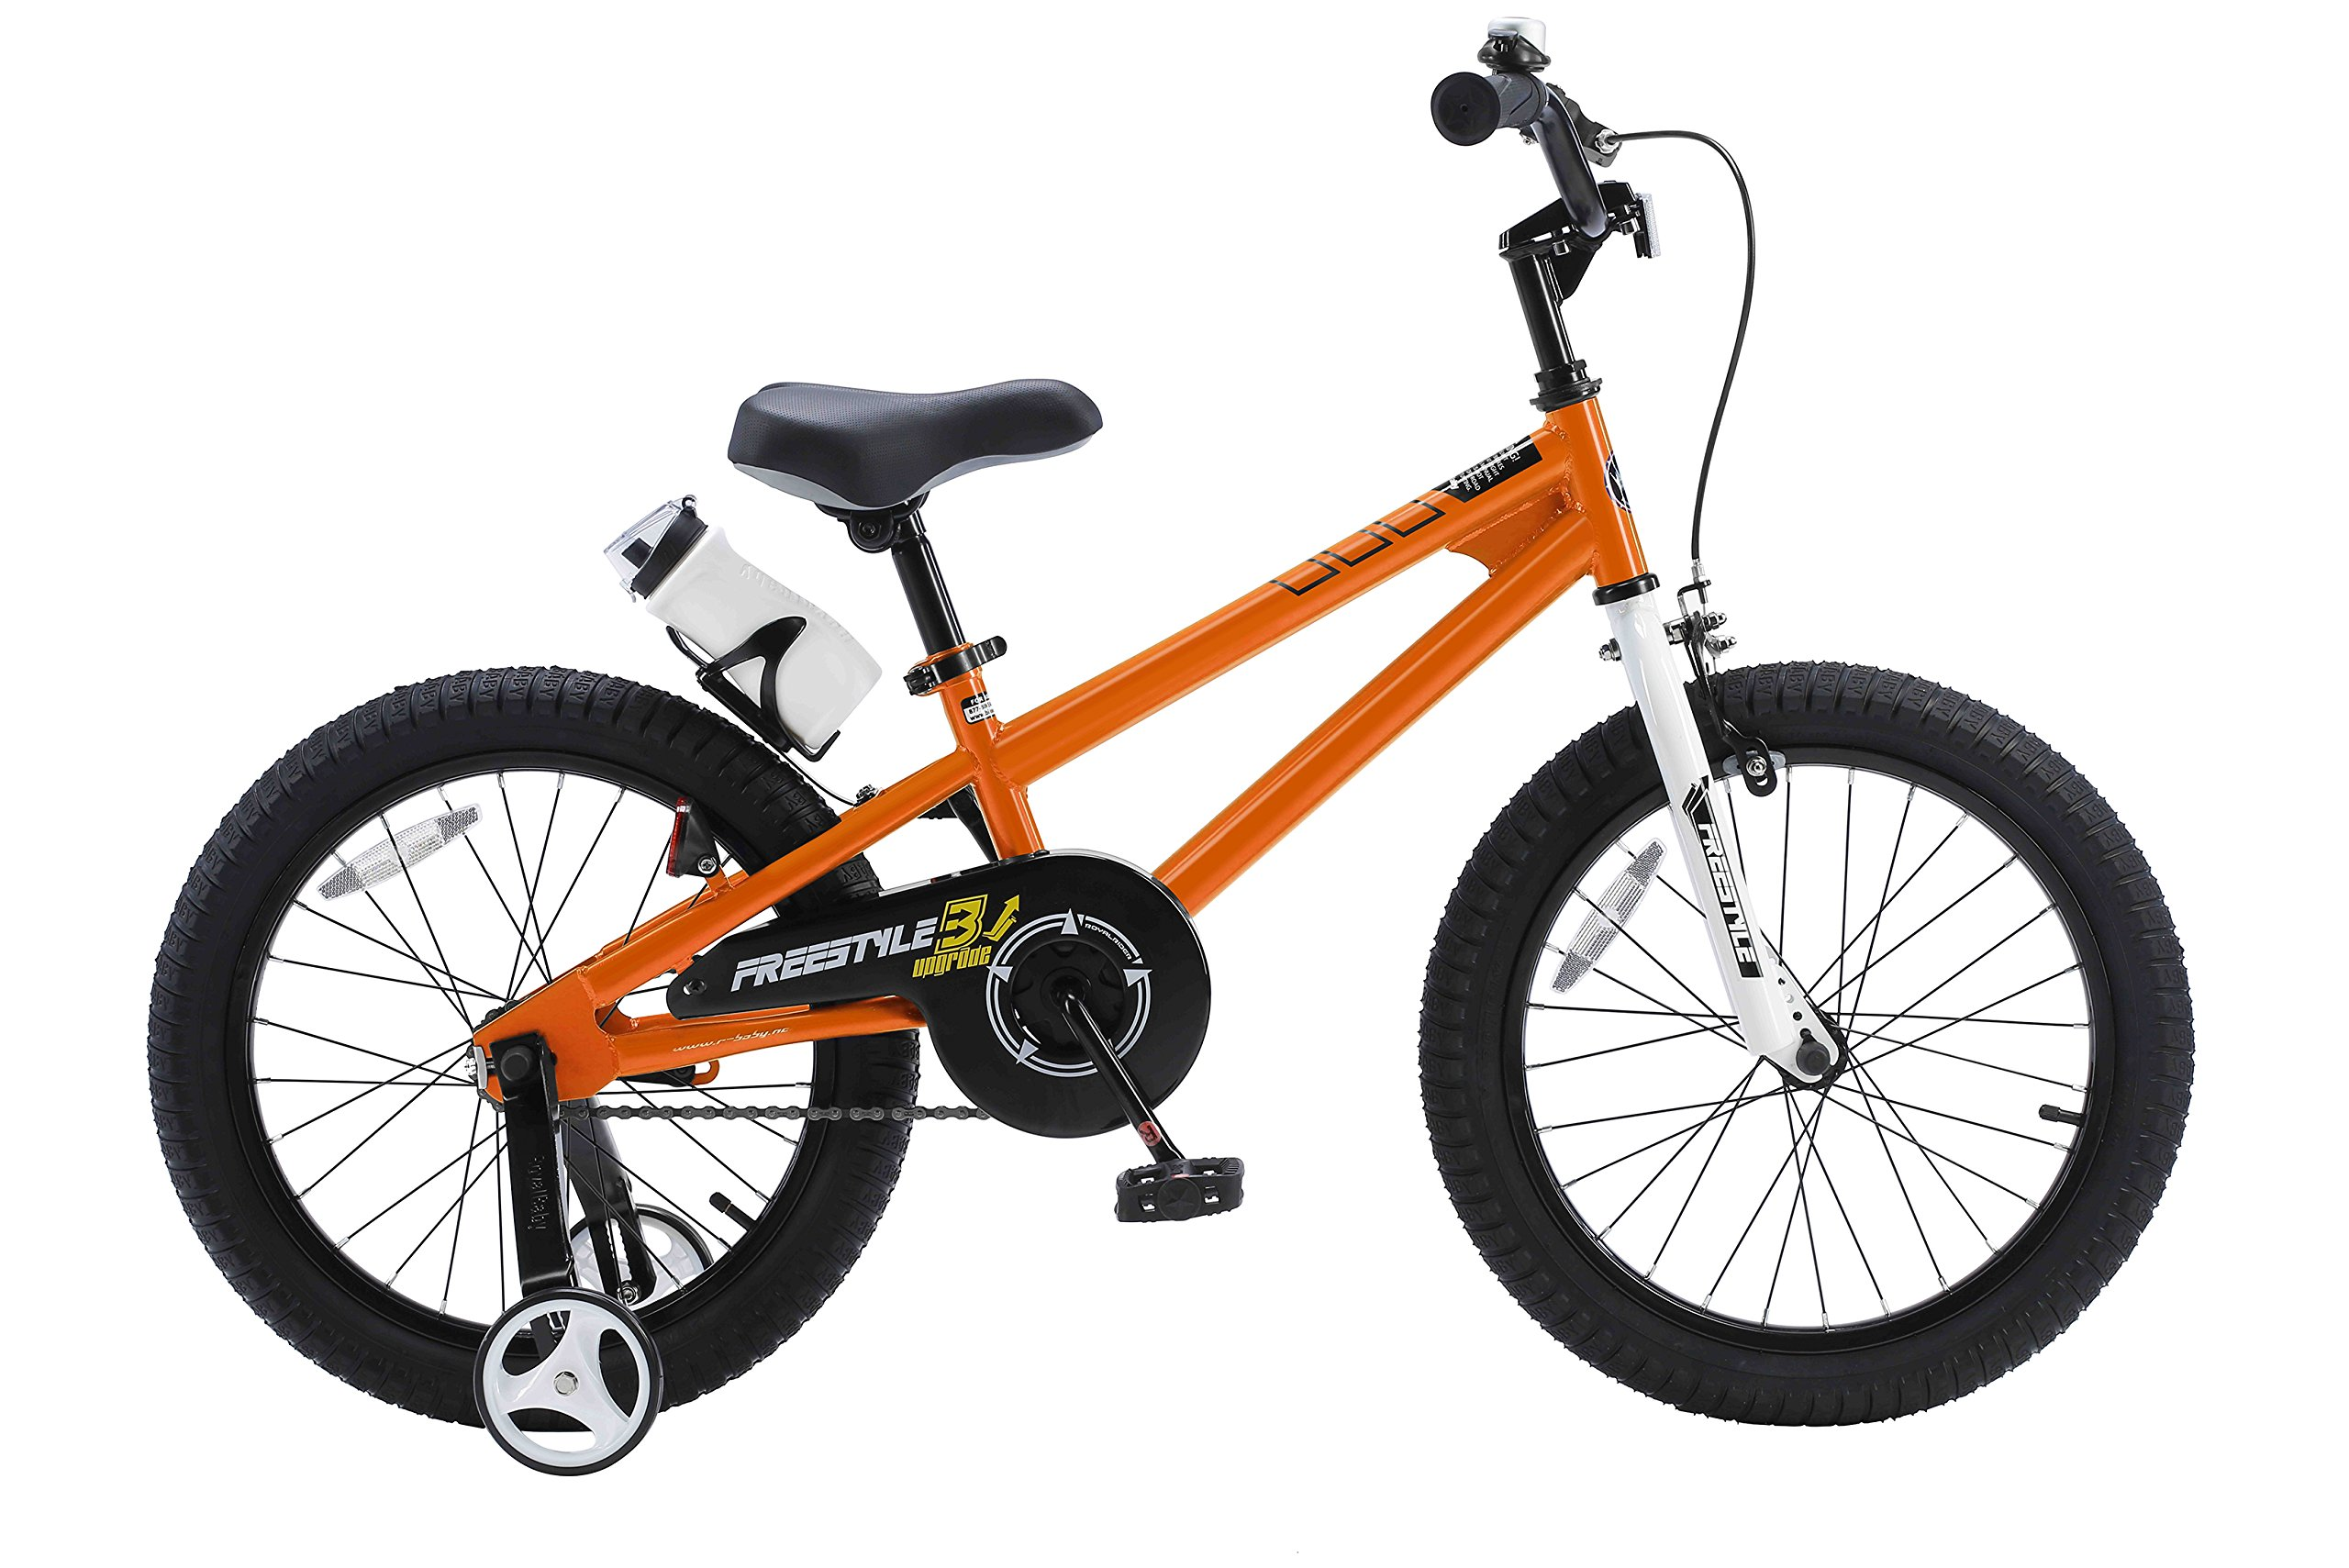 RoyalBaby BMX Freestyle Kids Bike, Boy's Bikes and Girl's Bikes with training wheels, 12 inch, 14 inch, 16 inch, 18 inch, Gifts for children by Royalbaby (Image #1)